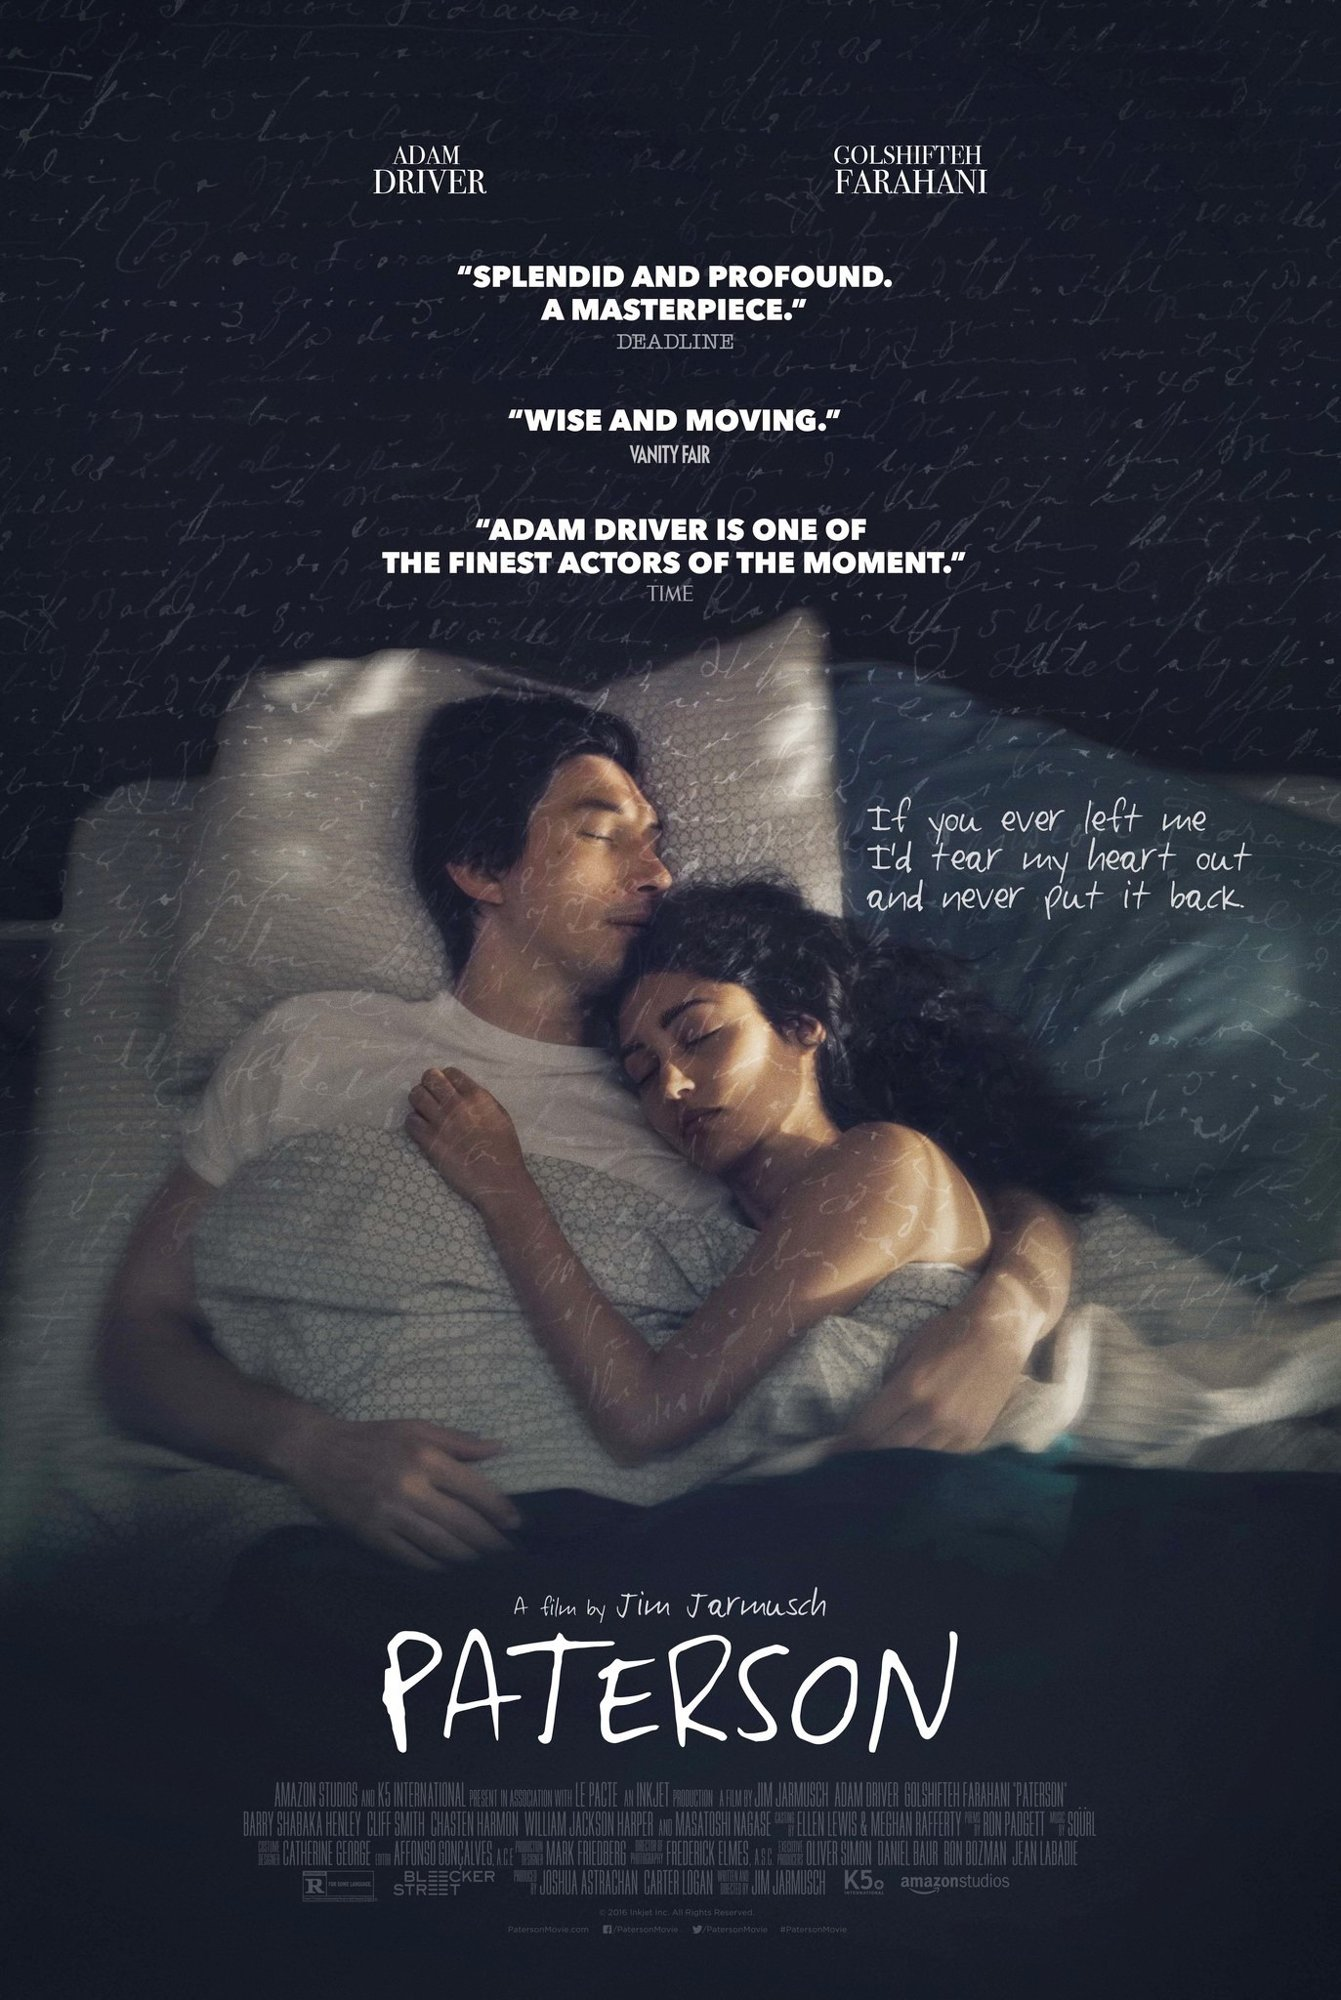 paterson-poster01.jpg